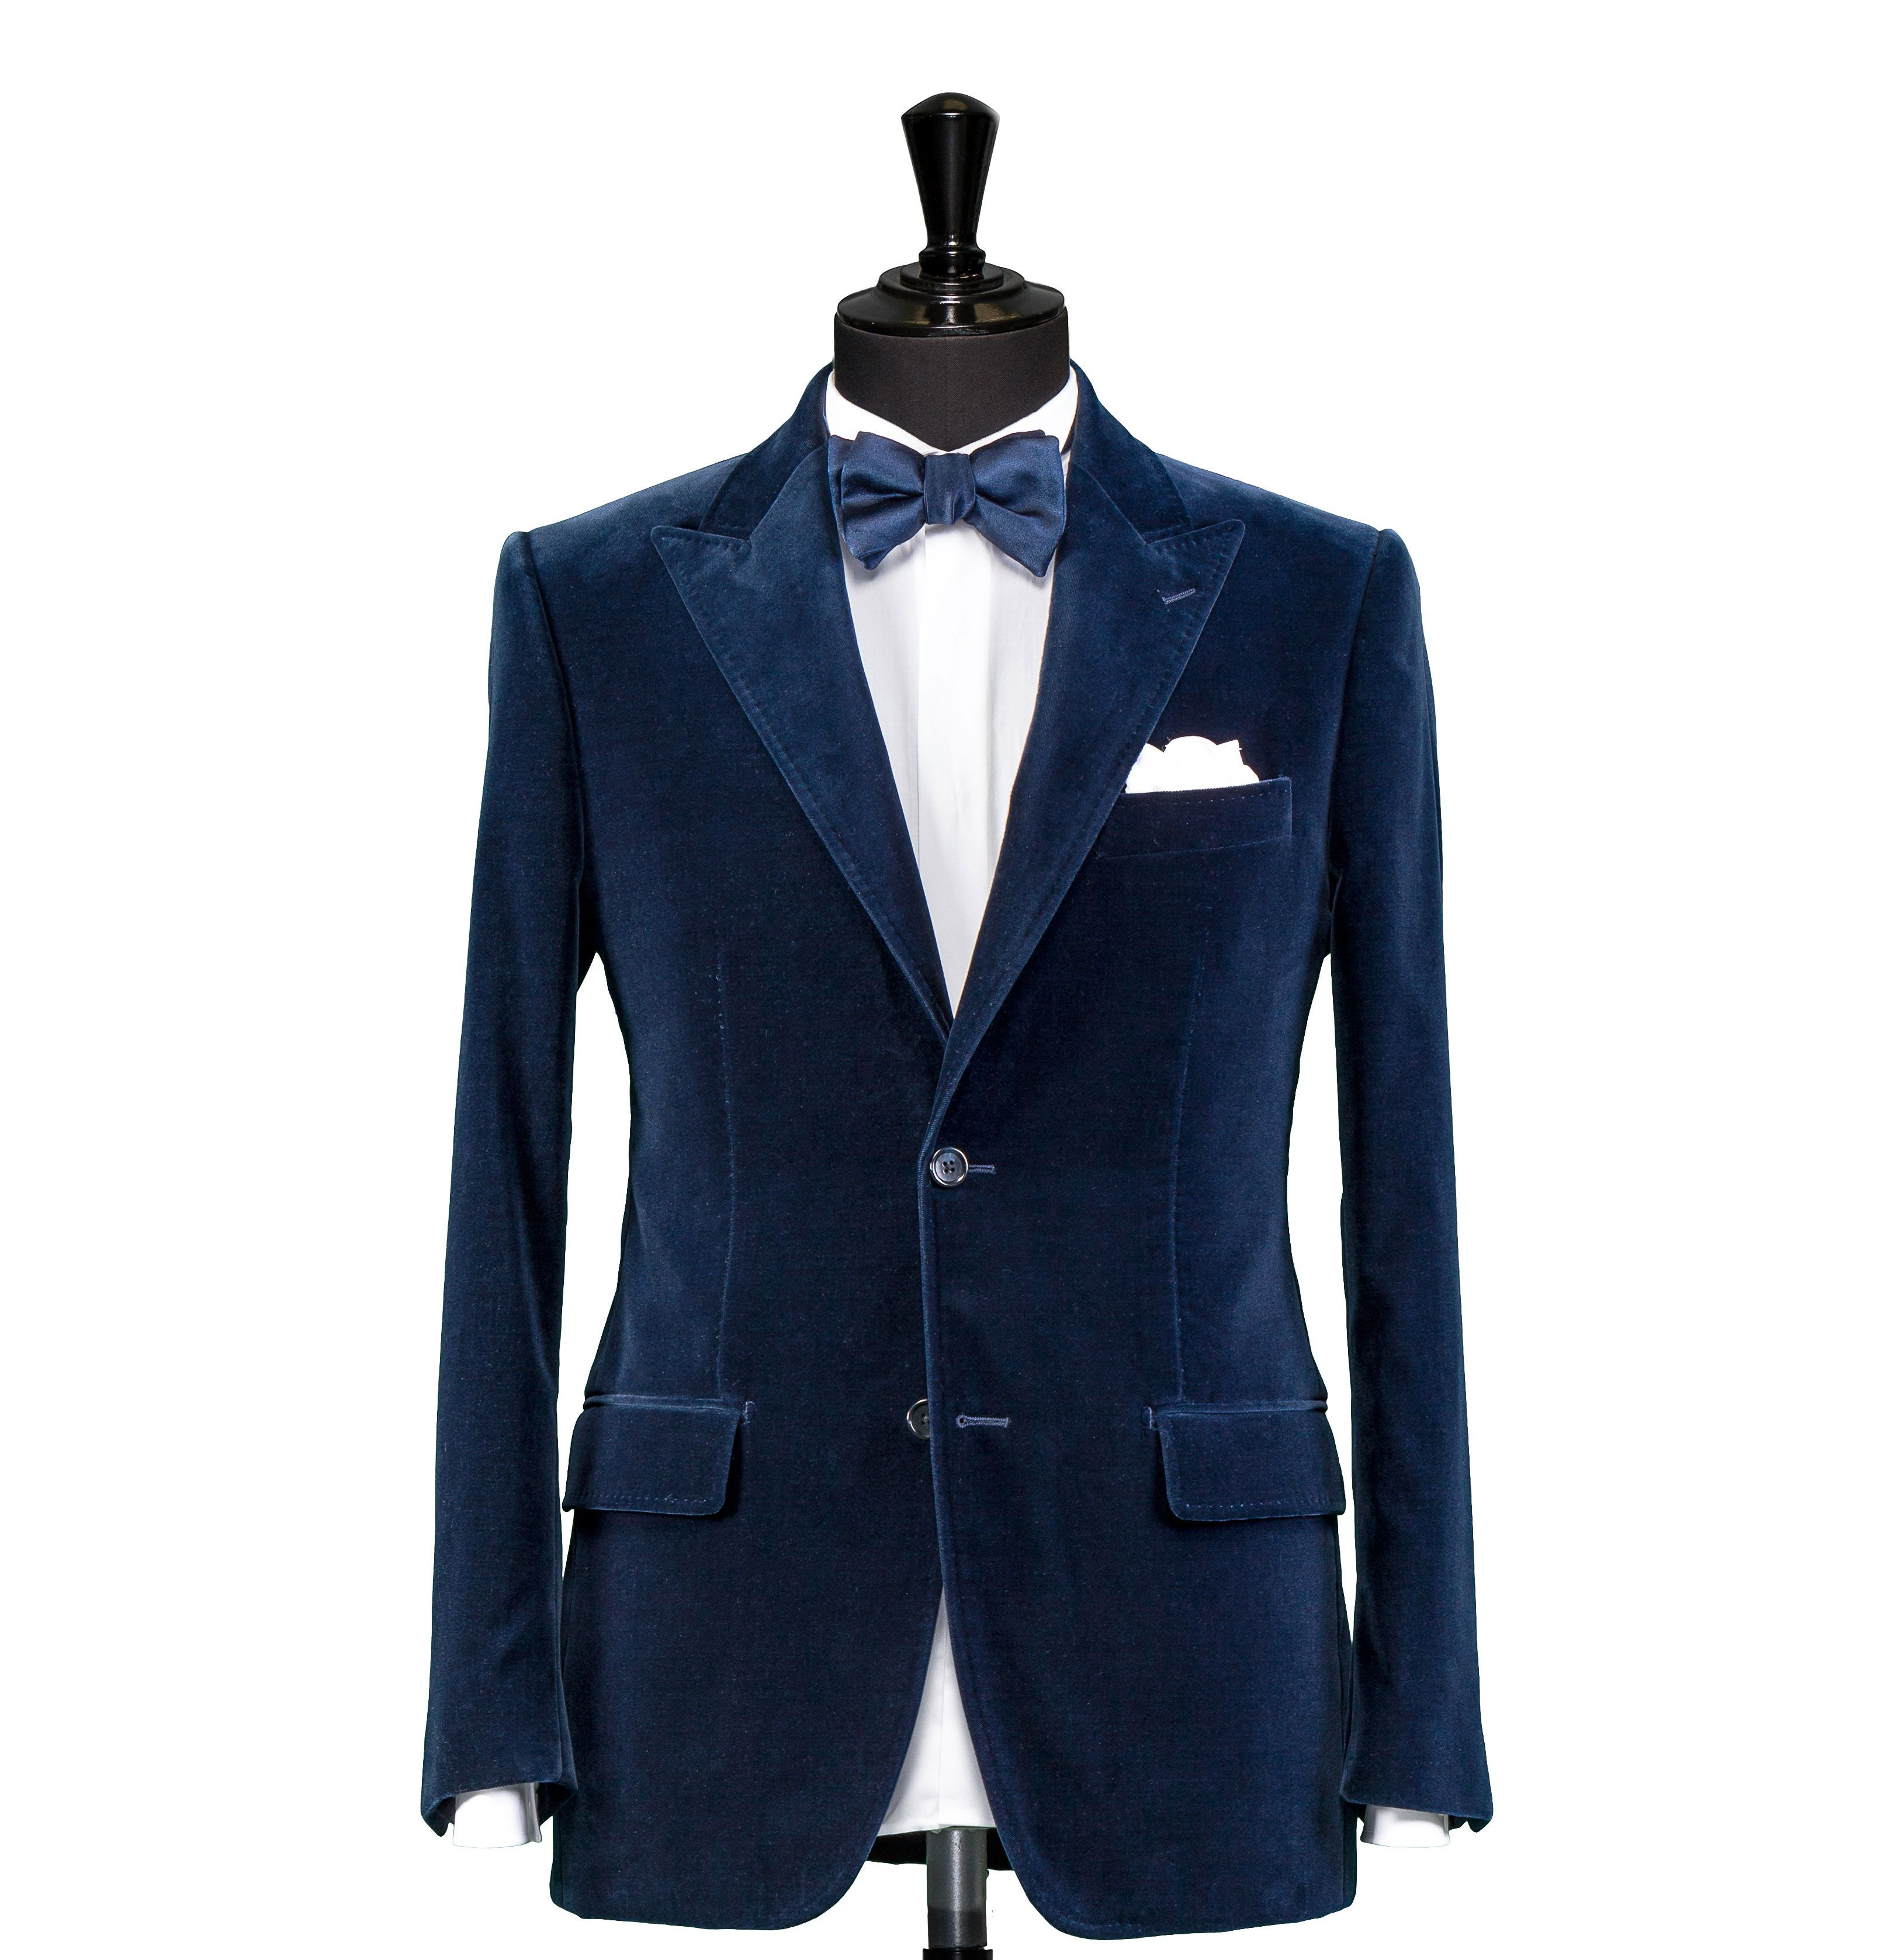 5160cacb7b Tailored Dinner Suit – Fabric 7839 Navy Blue Velvet Peak Lapel Cloth  weight  330g Composition  100% Cotton